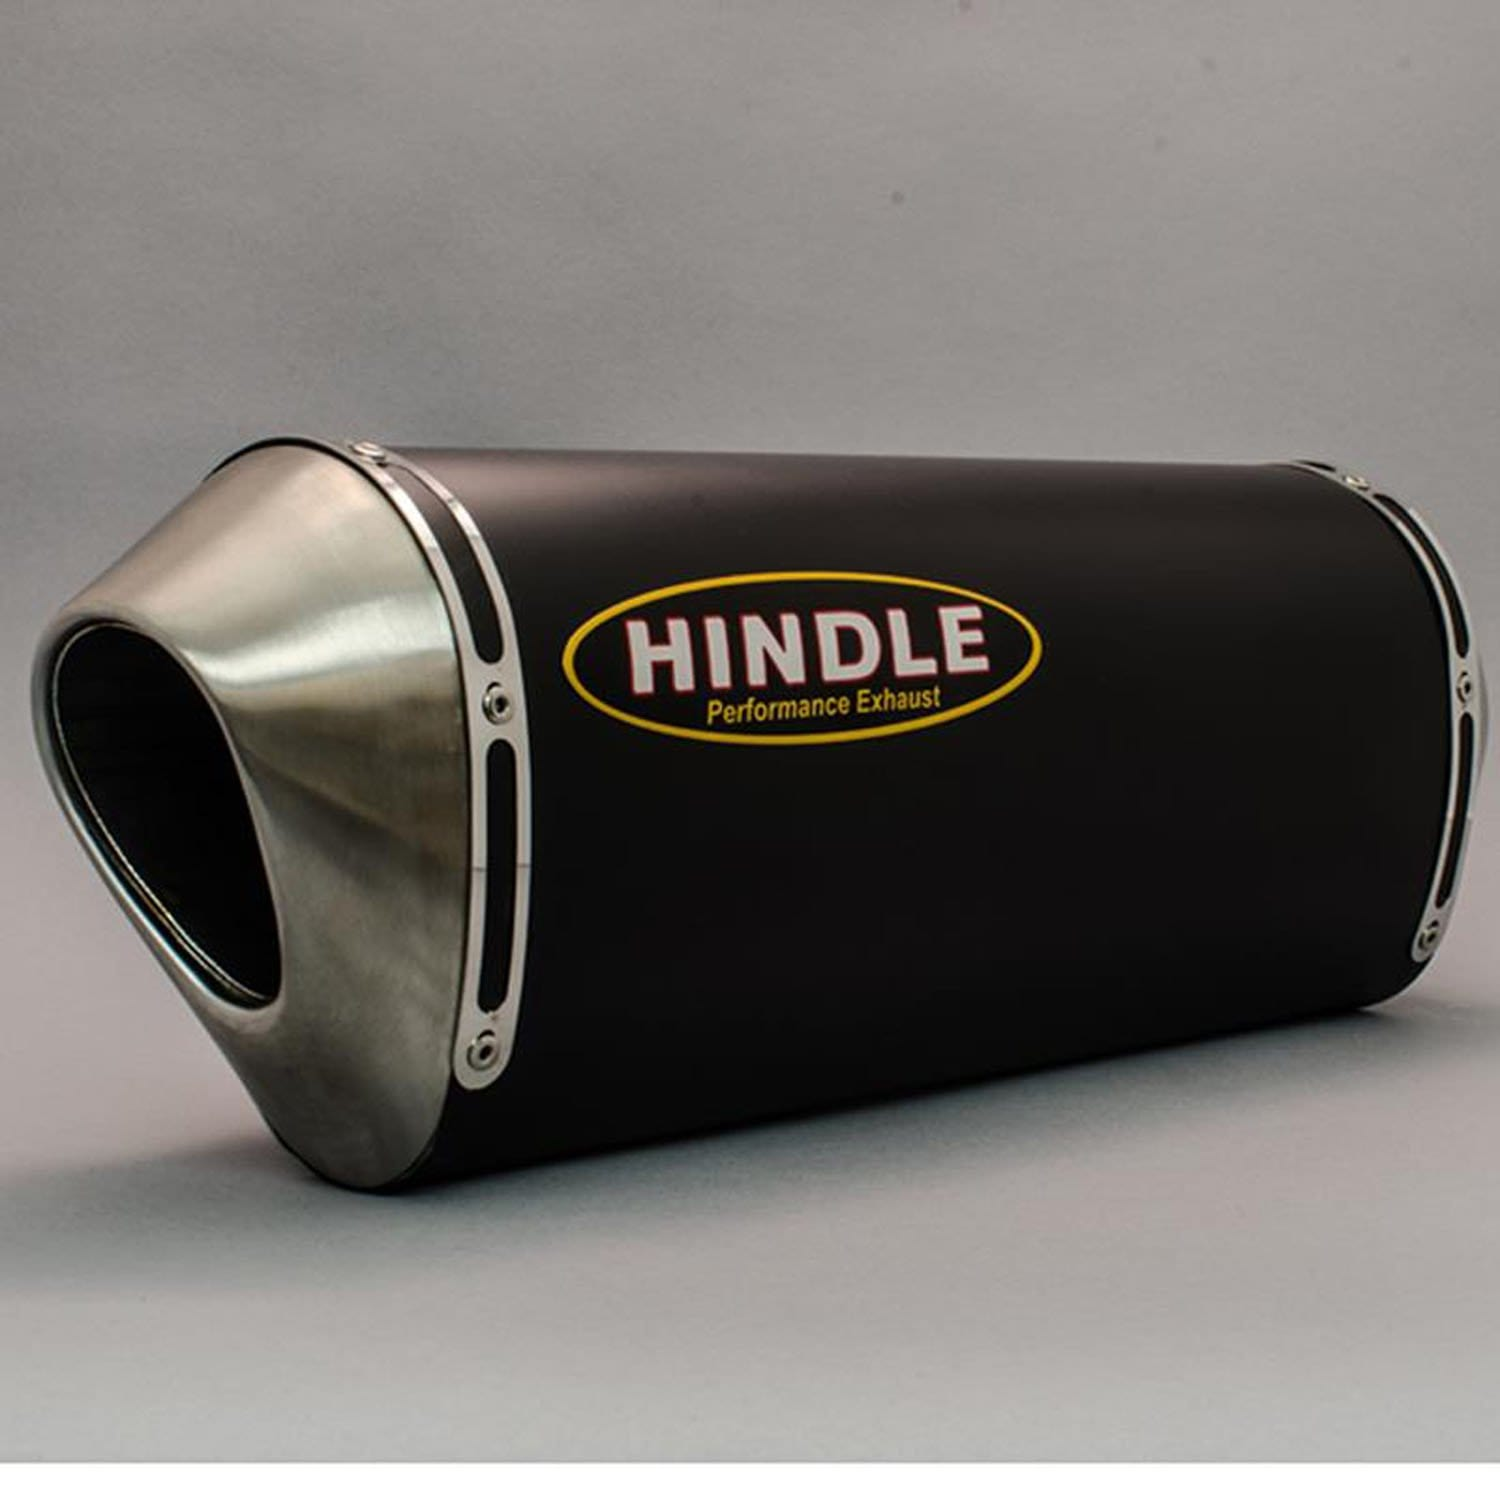 Hindle Evolution Slip-on System Suzuki GSXR600/750 2011-20